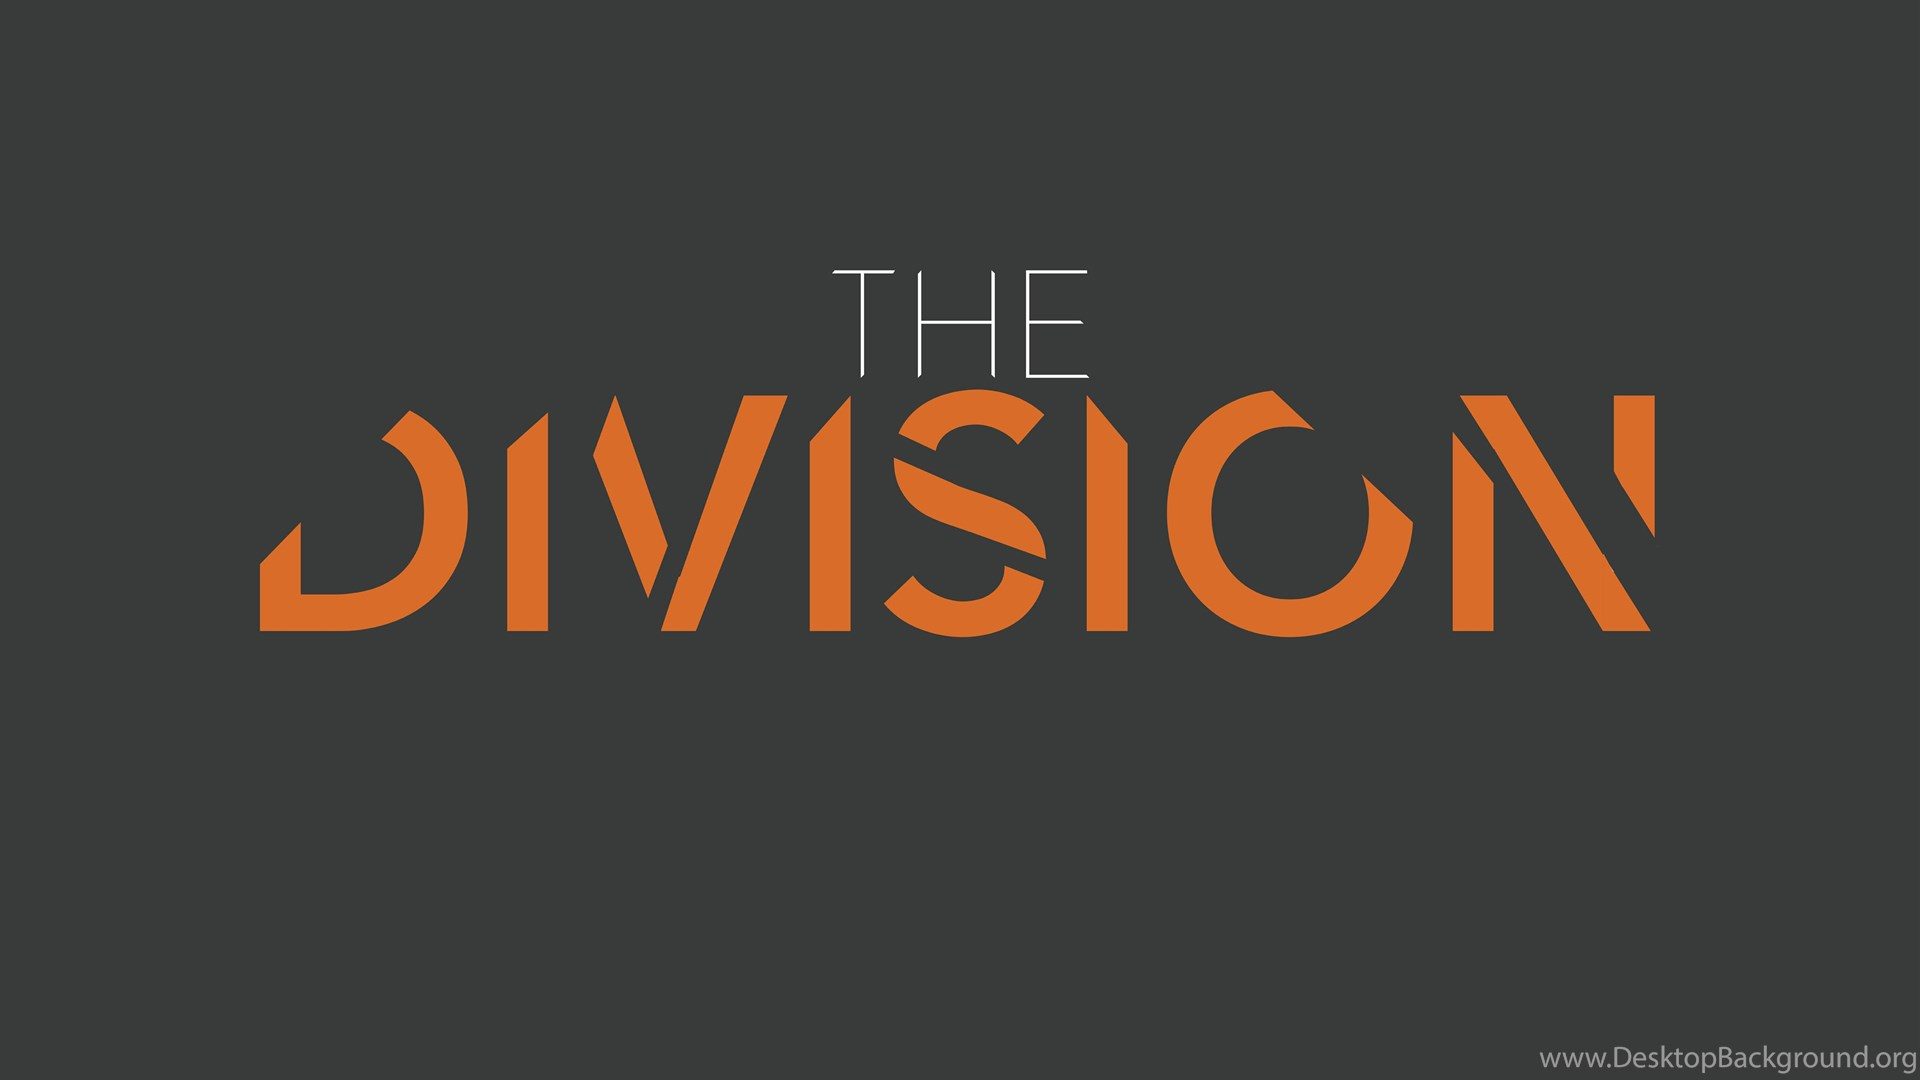 The Division' 4K Text Wallpapers I Just Made : Thedivision